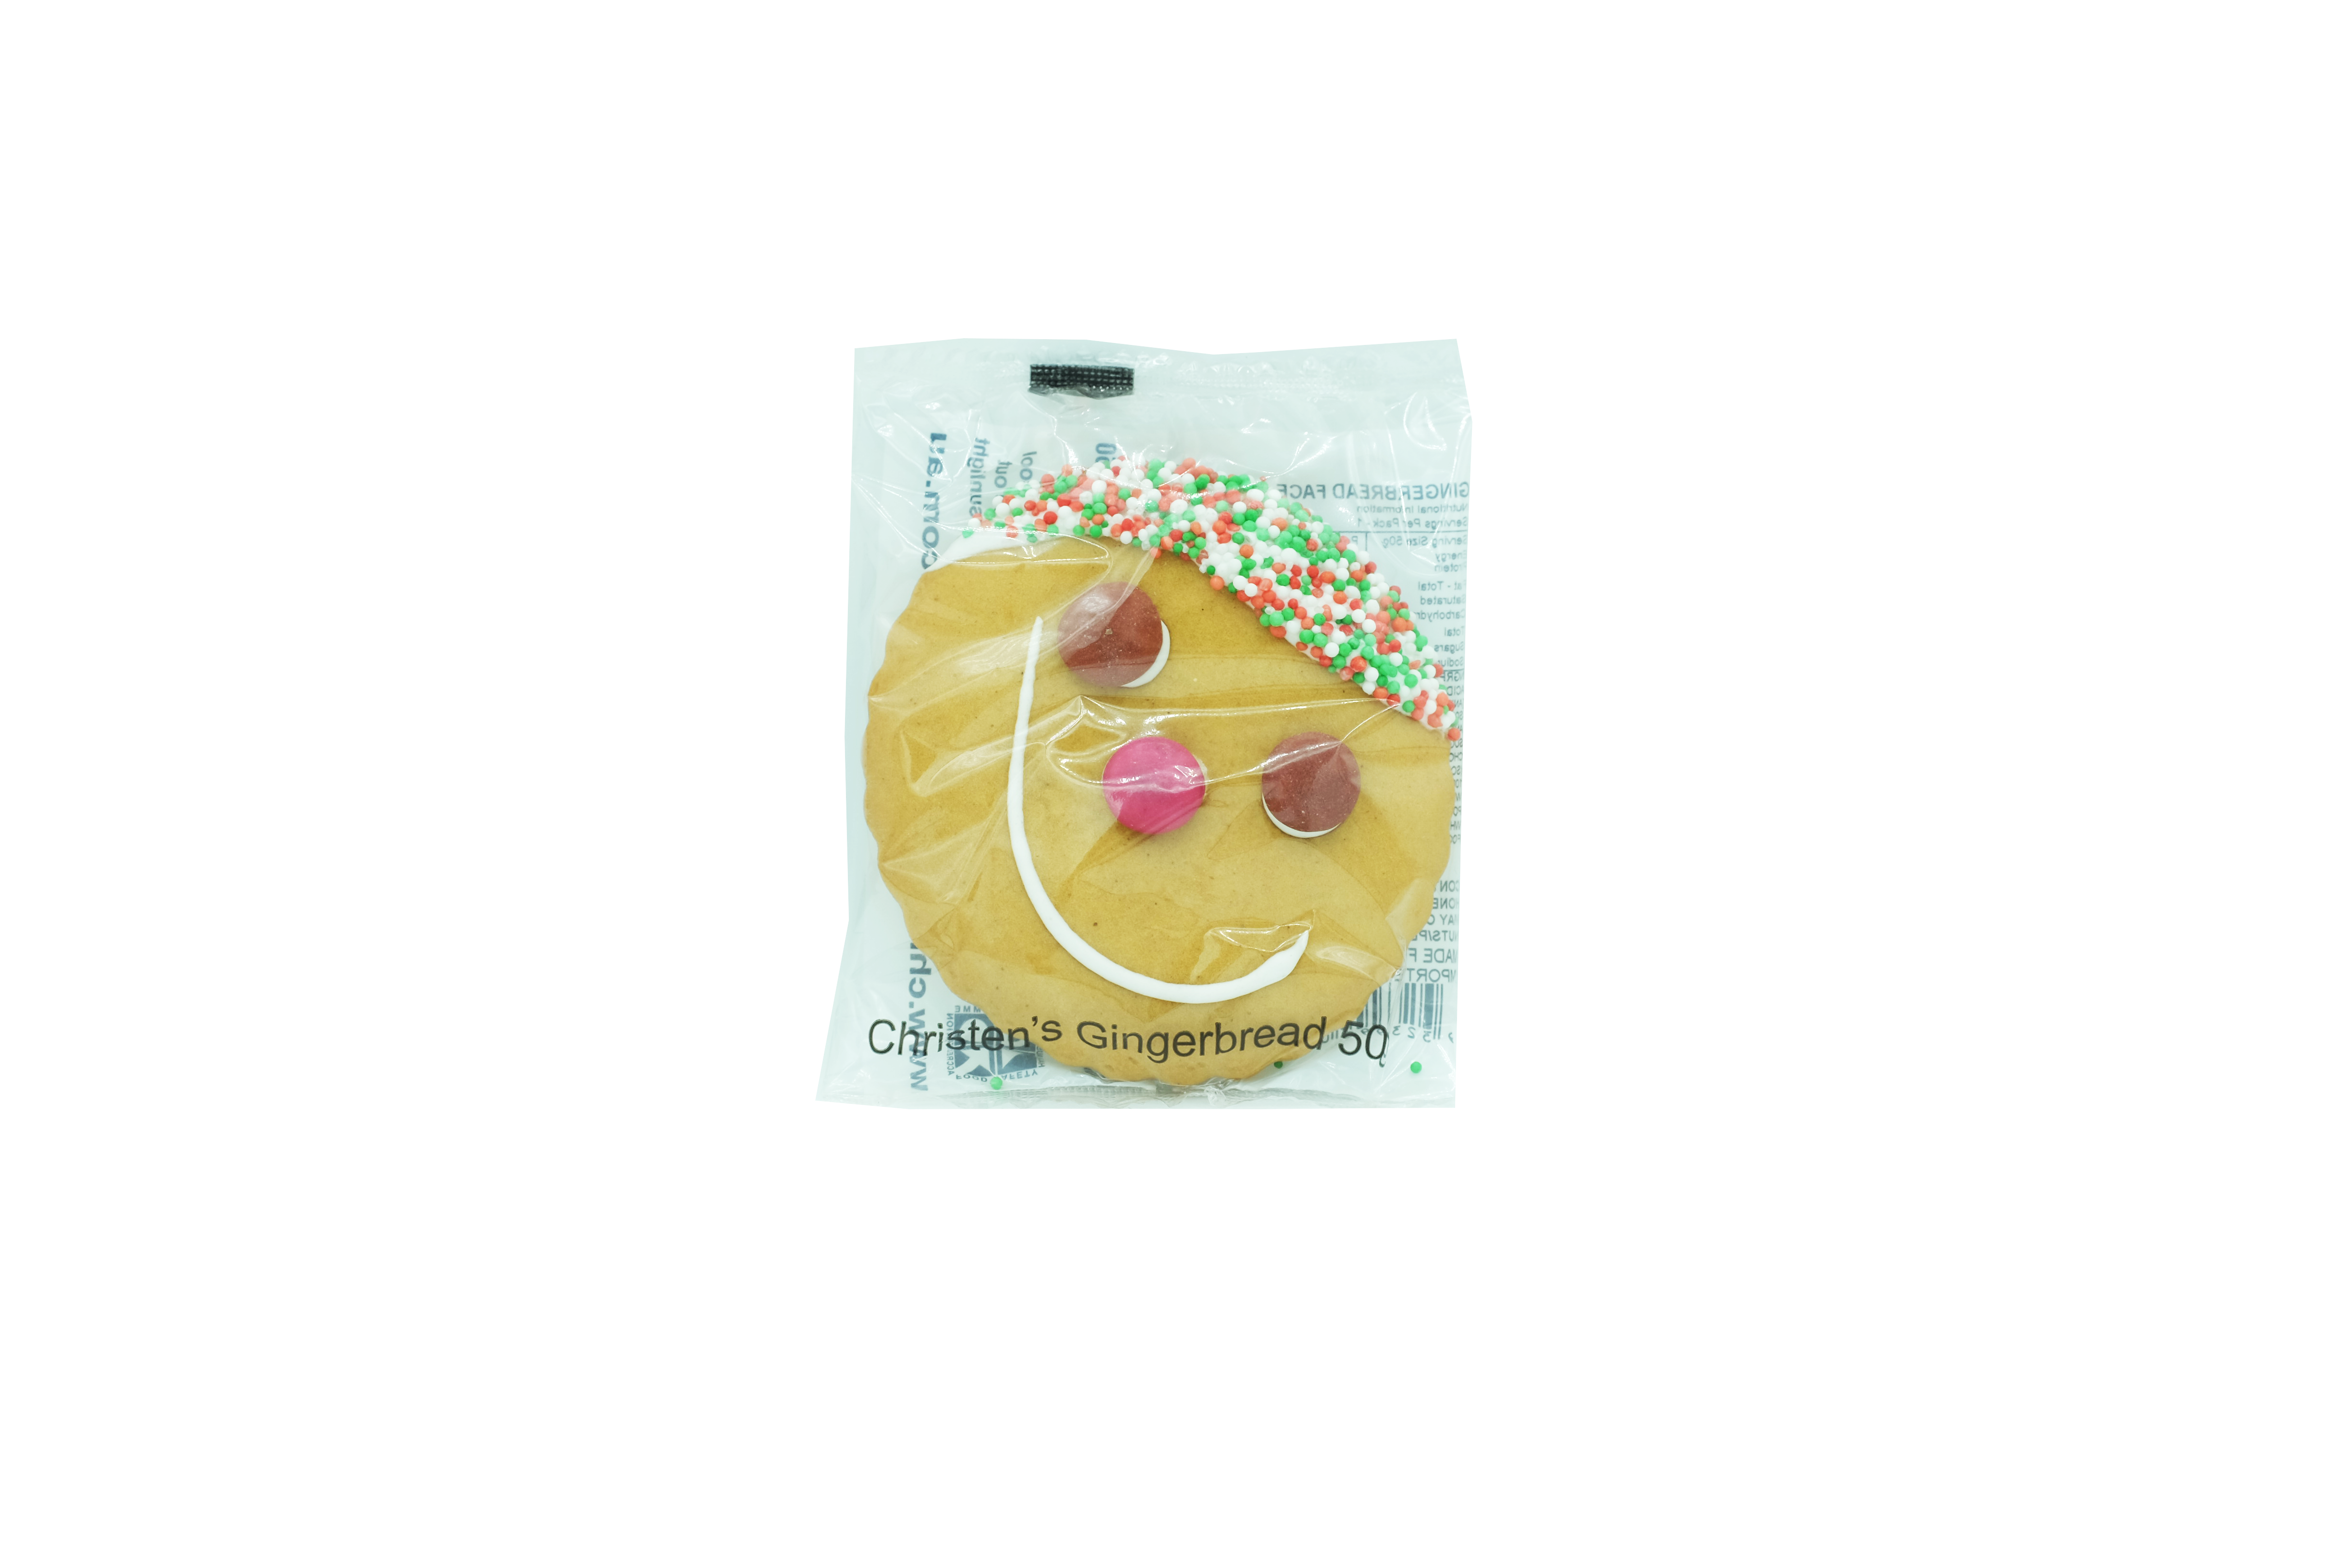 Product Gingerbread Face01